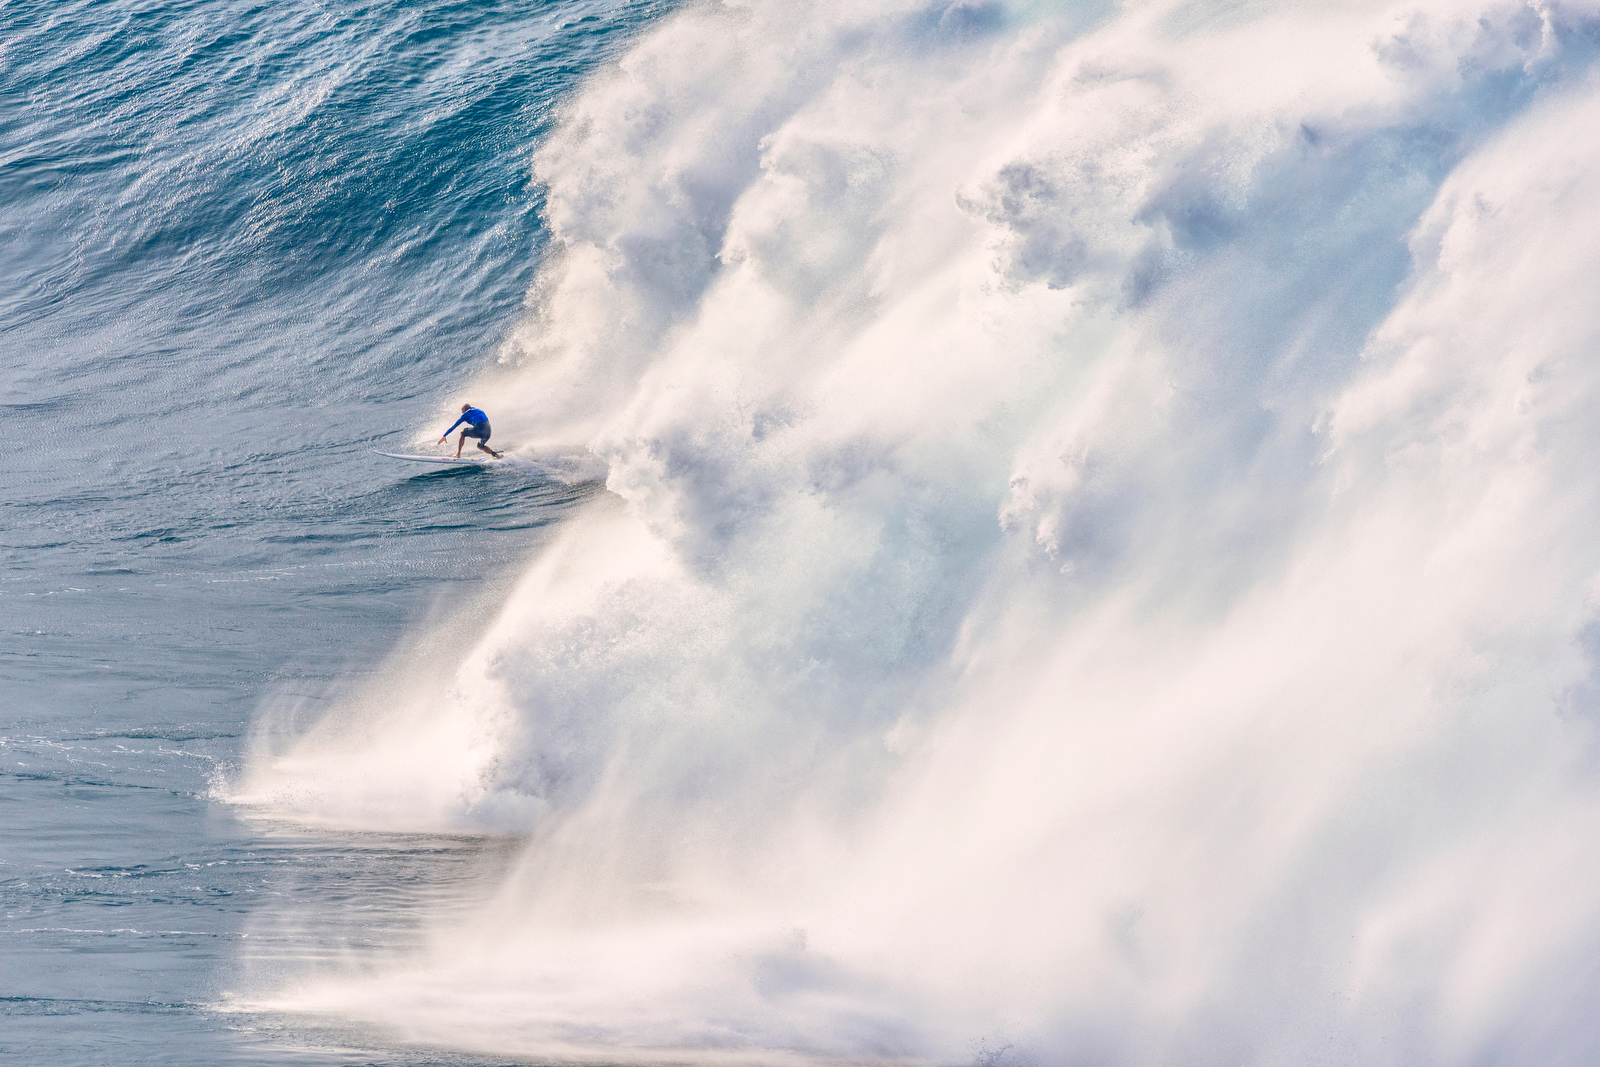 Surfers Risk Death Paddling Into Historic Foot Waves At Jaws - Surfing inside 27 second long barrel wave